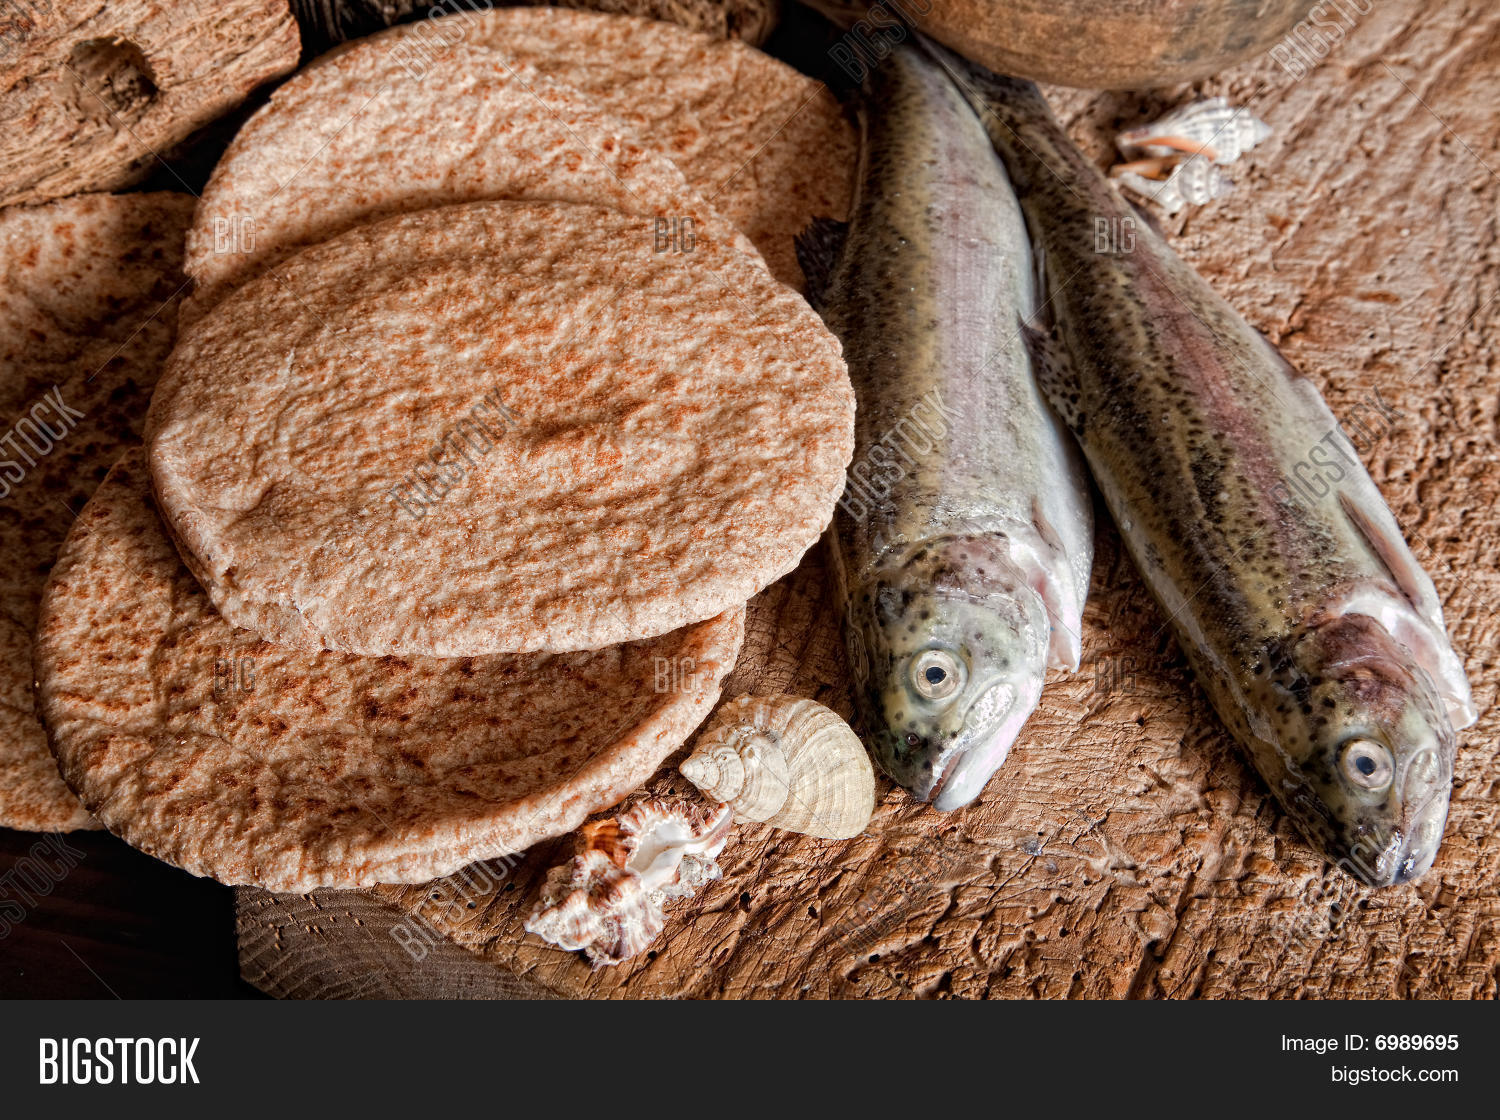 Five loaves of bread and two fish stock photo stock for Five loaves two fish